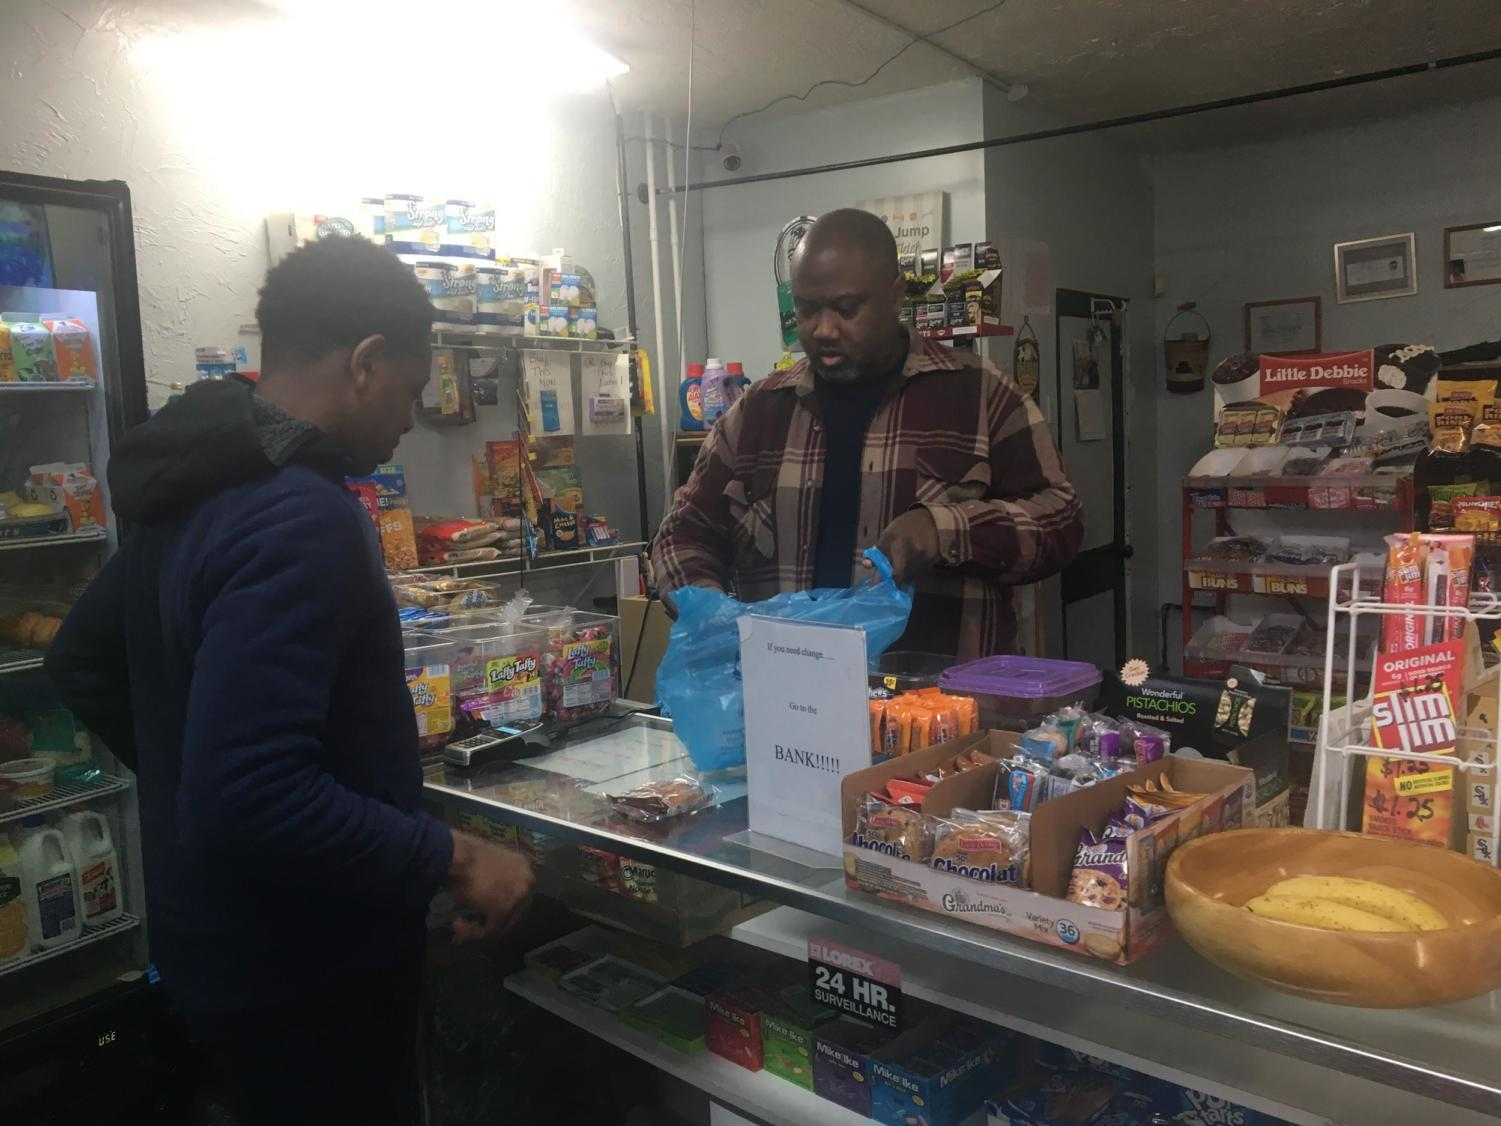 Carl Lewis bags a customer's purchase at his corner store.